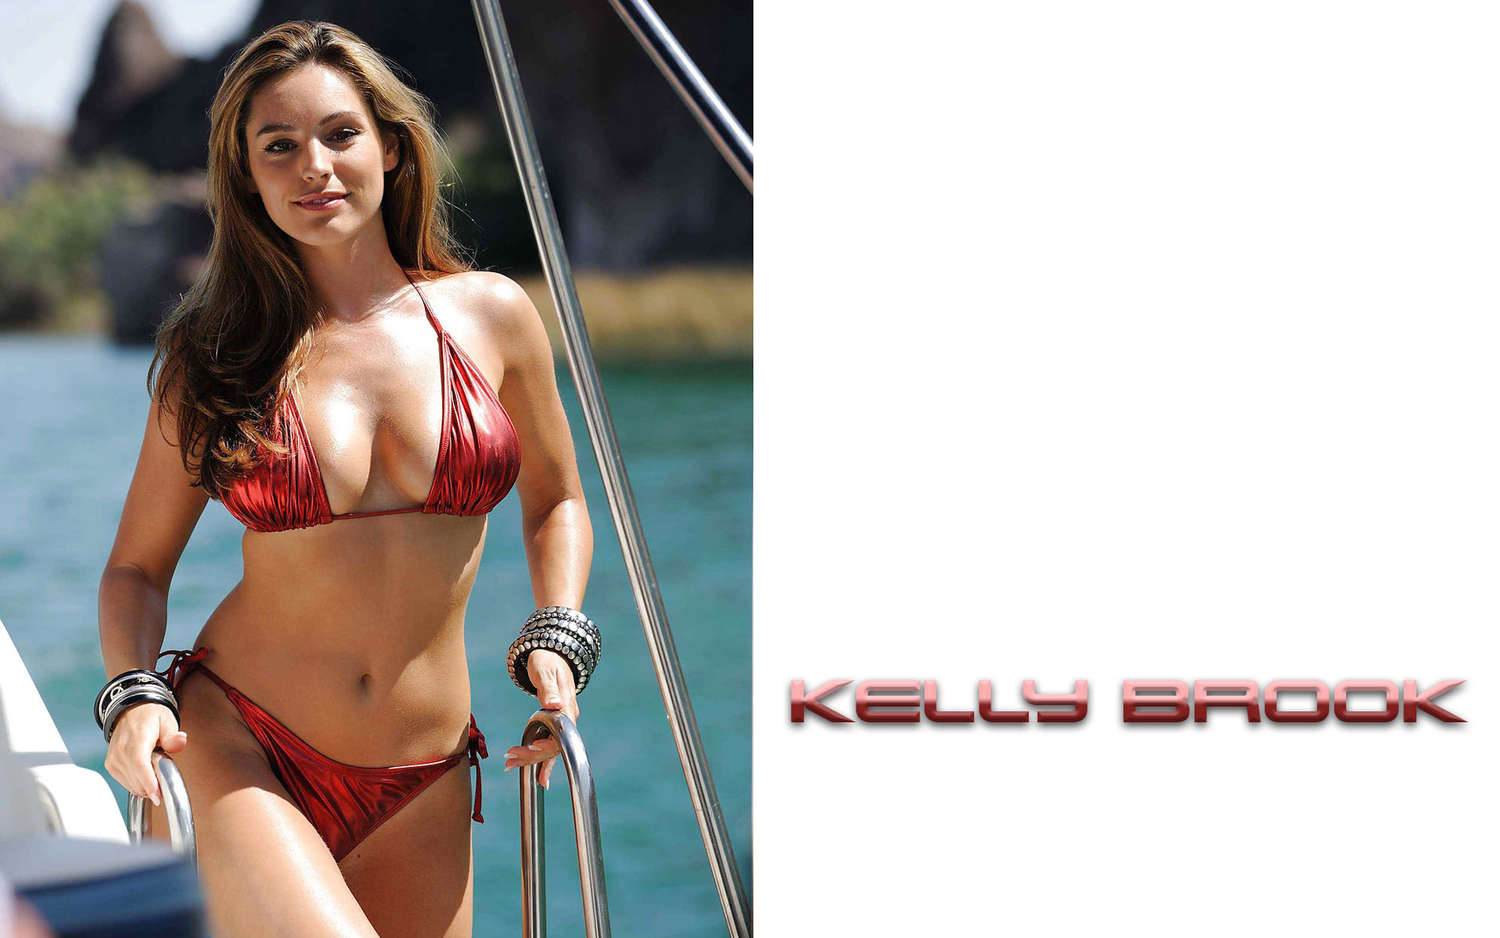 1500x938 - Kelly Brook Wallpapers 12